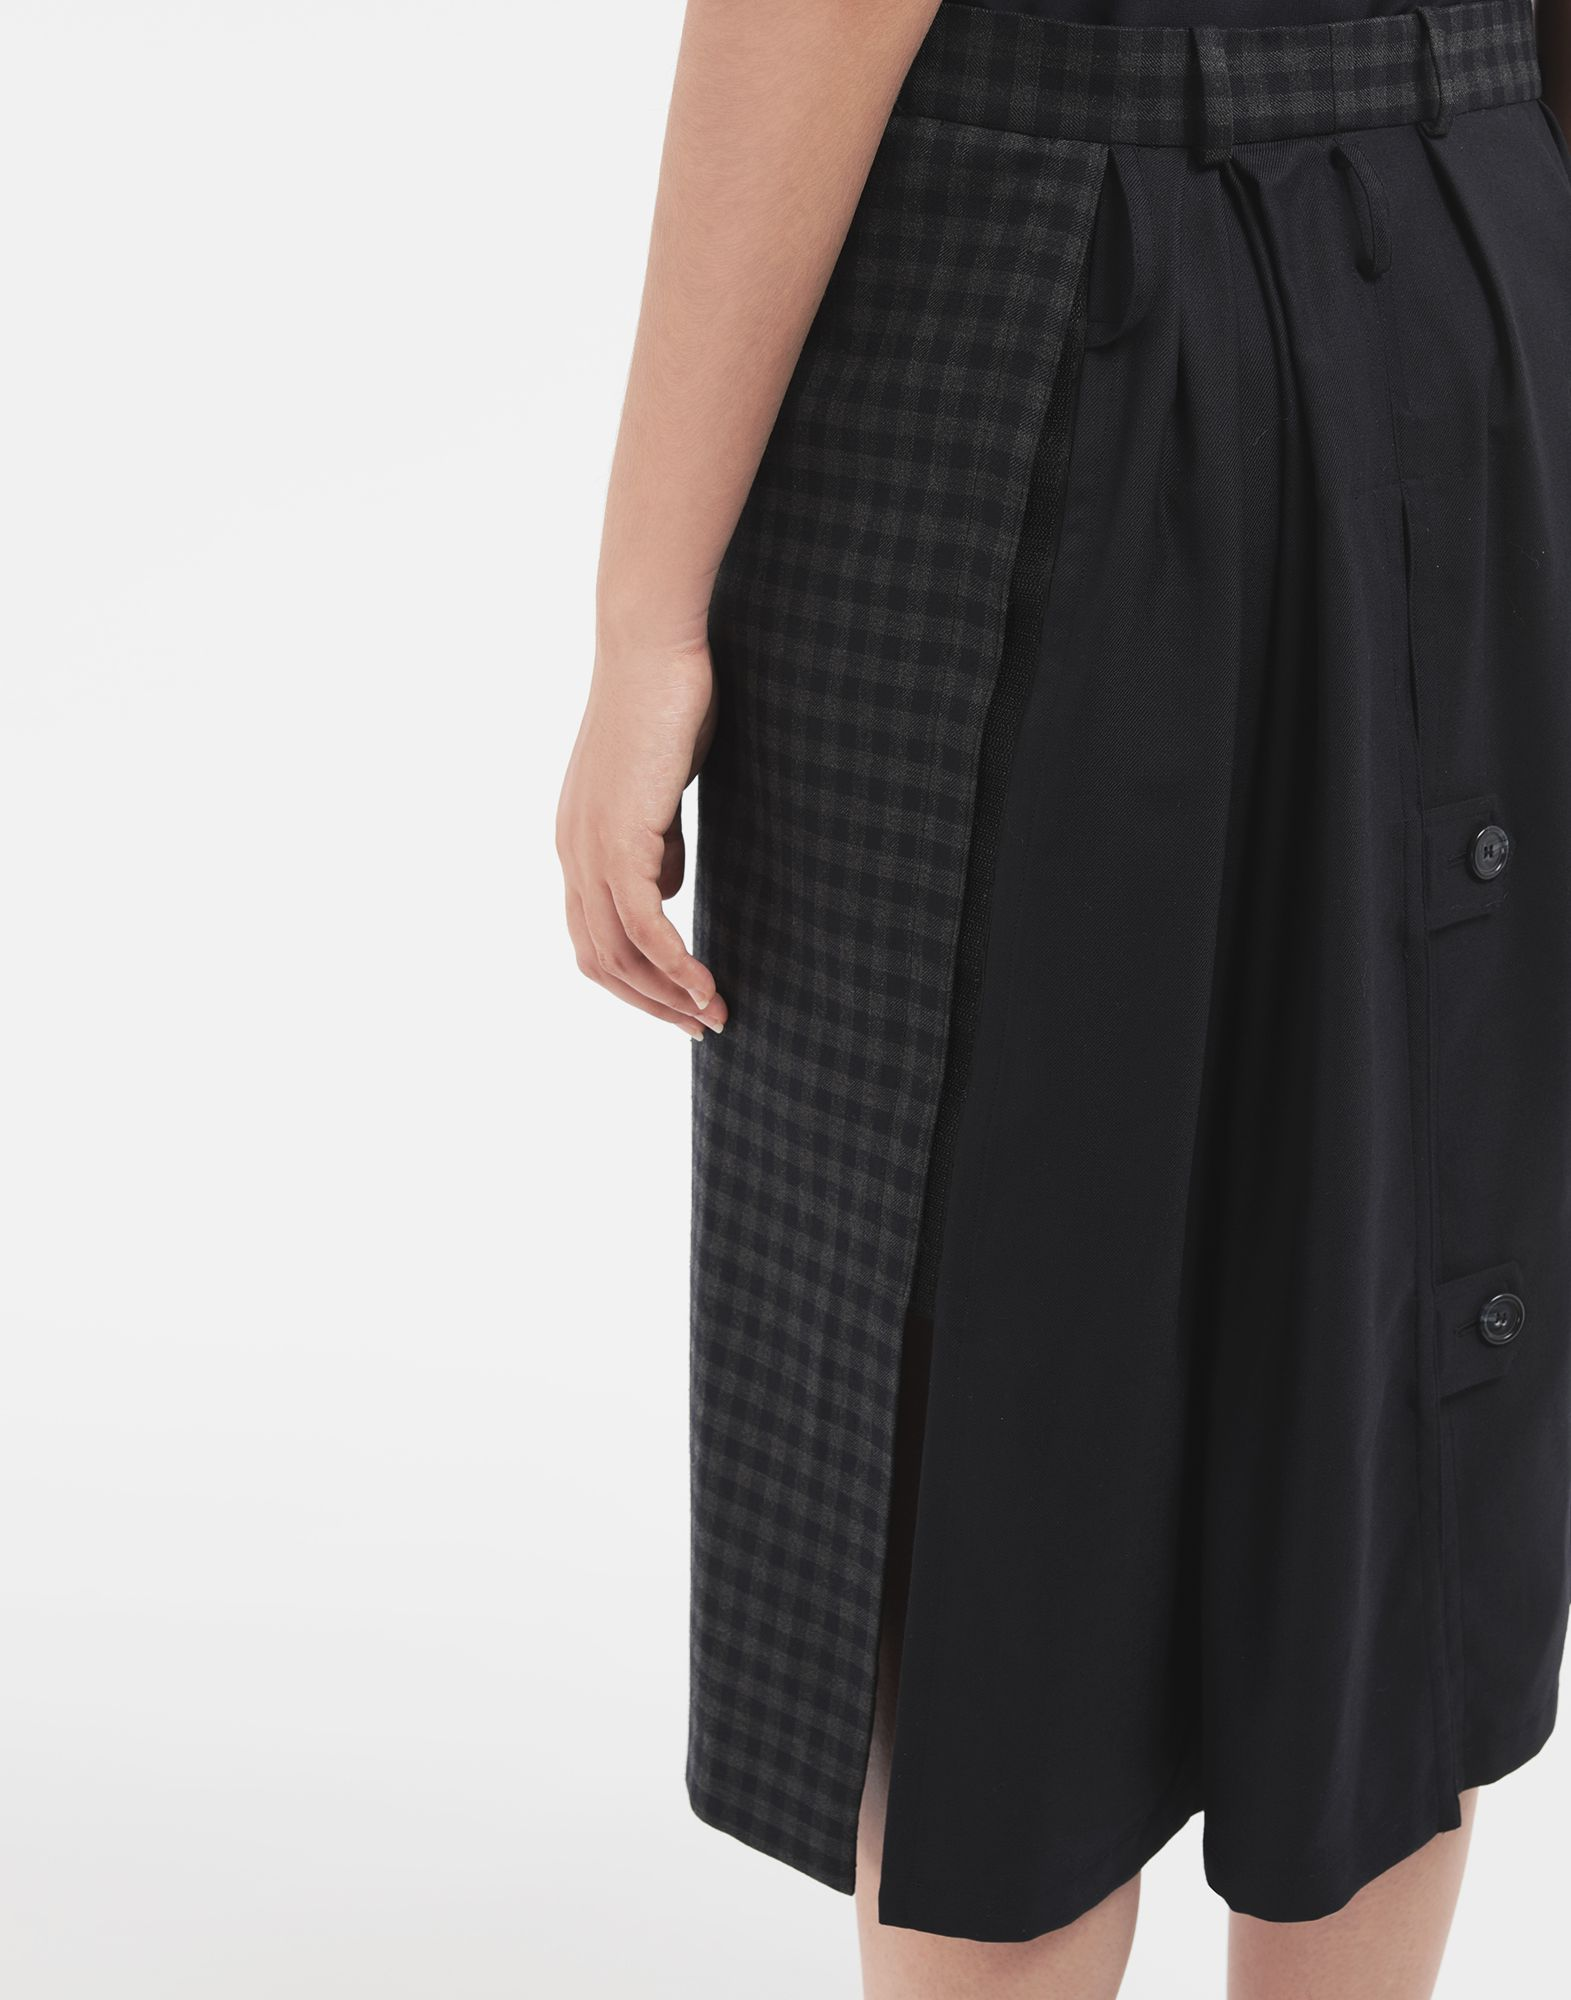 MAISON MARGIELA Reworked check dress Dress Woman b